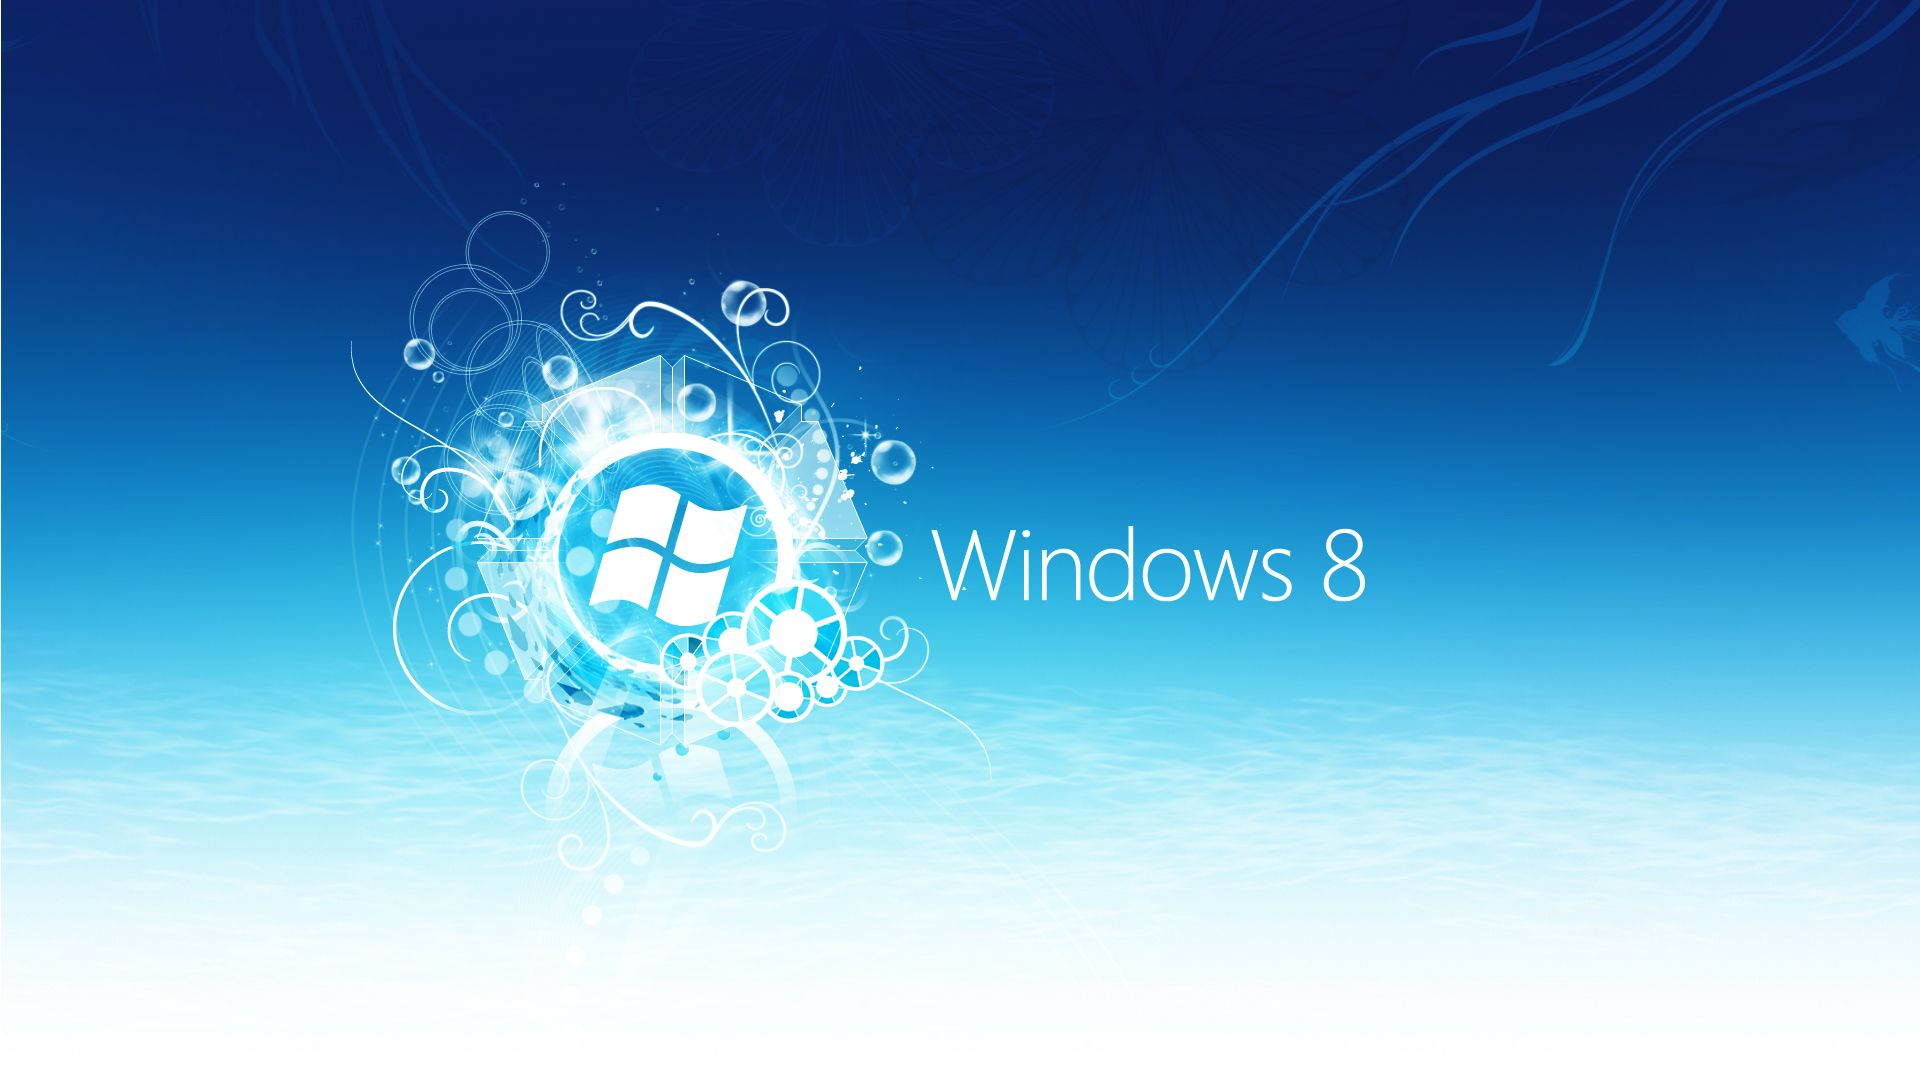 windows wallpapers hd p free download group 2560a—1440 windows 8 wallpapers themes 30